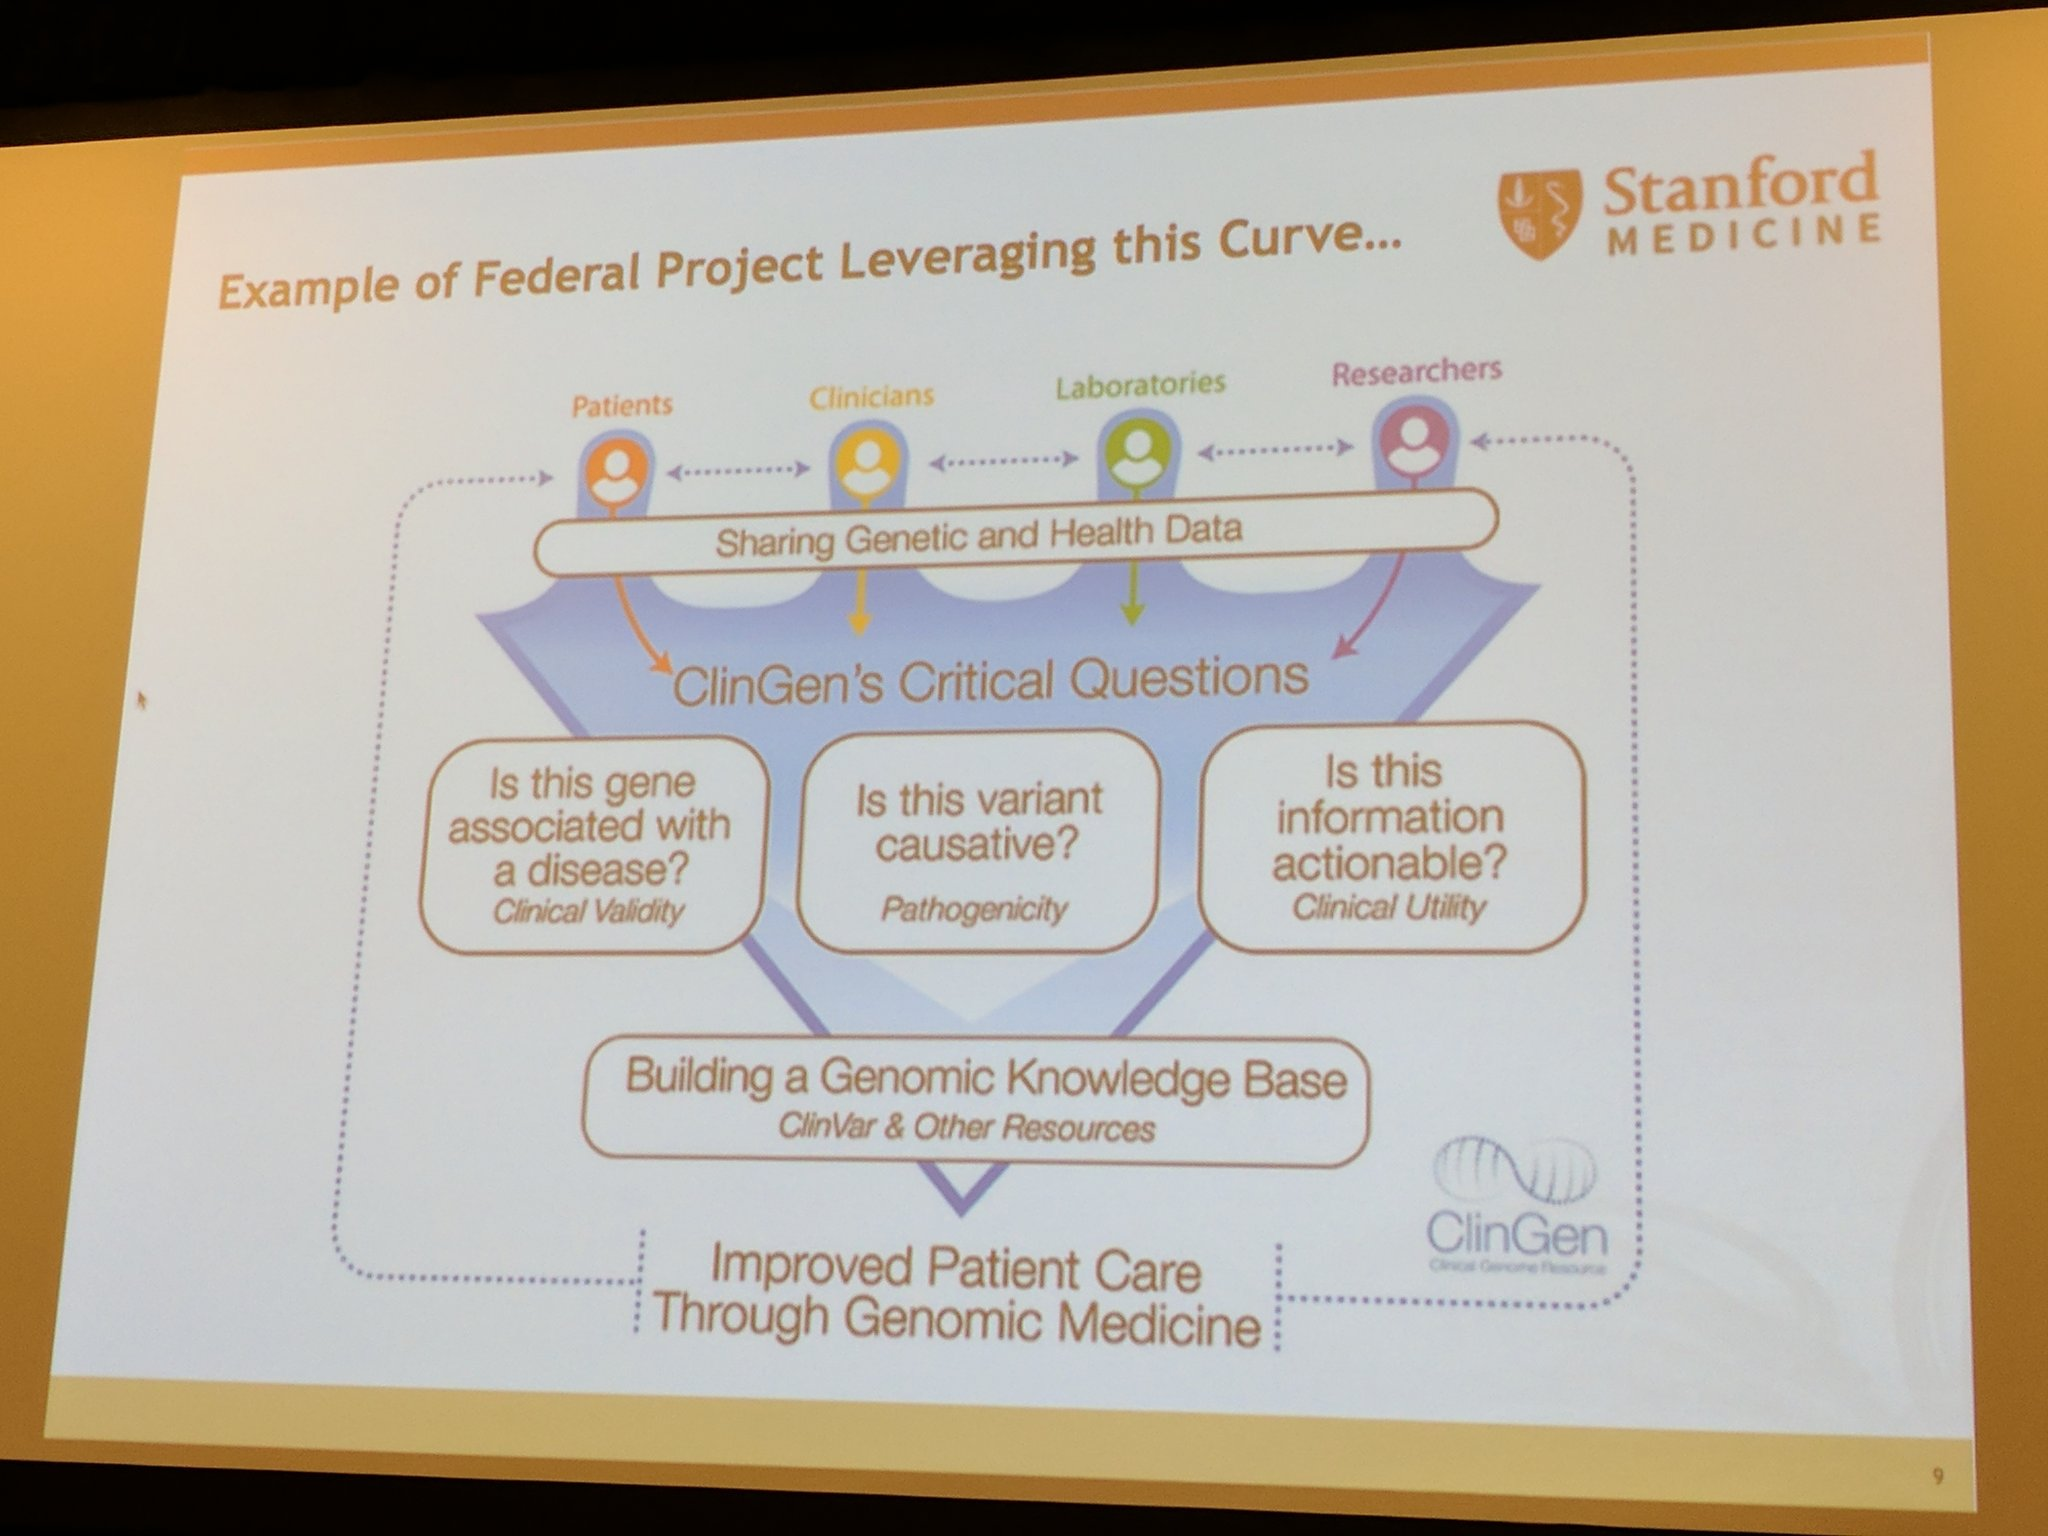 On how to leverage genetics to improve patient care with an affordable plan @cdbustamante @StanfordCEHG #CEHG17 https://t.co/IZXcy0WiIy